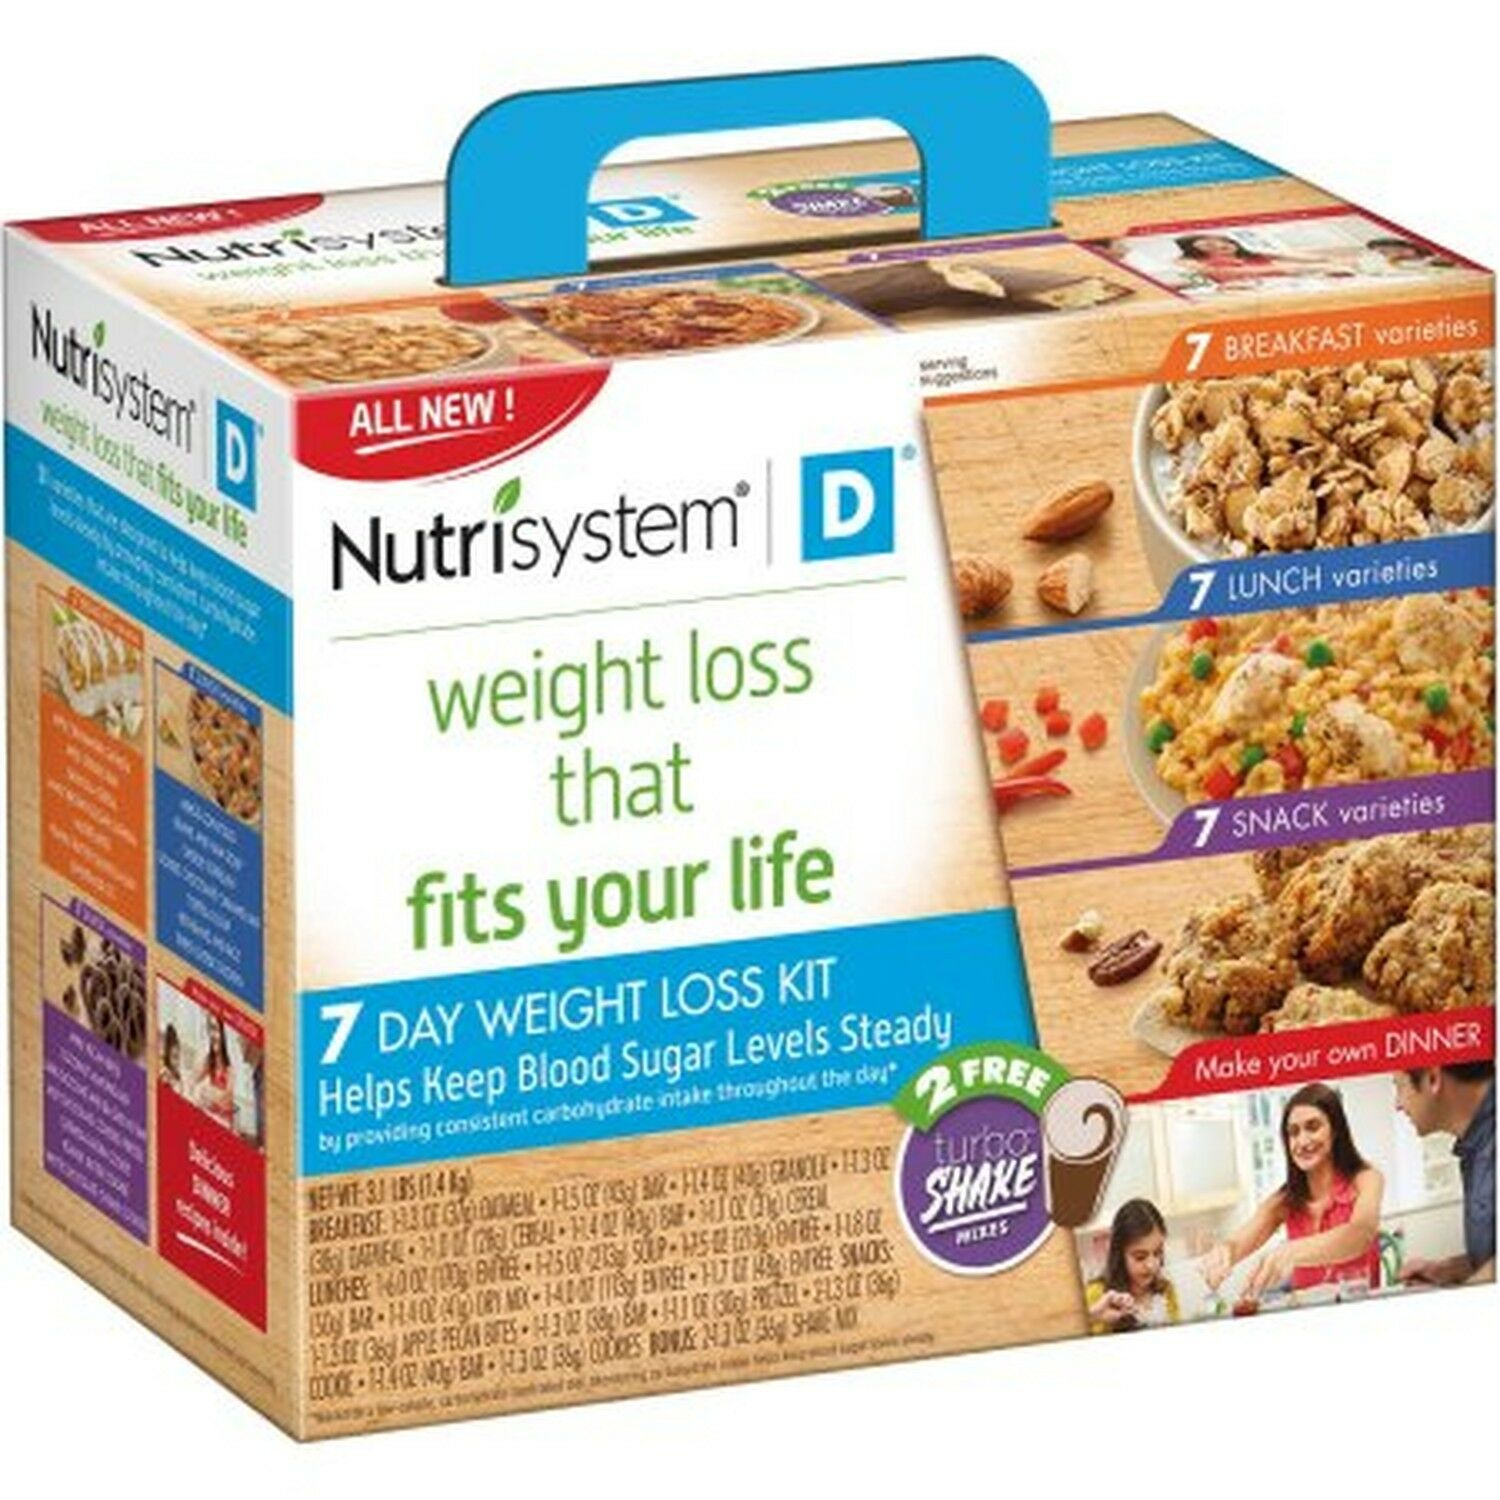 What Nutrisystem Is All About